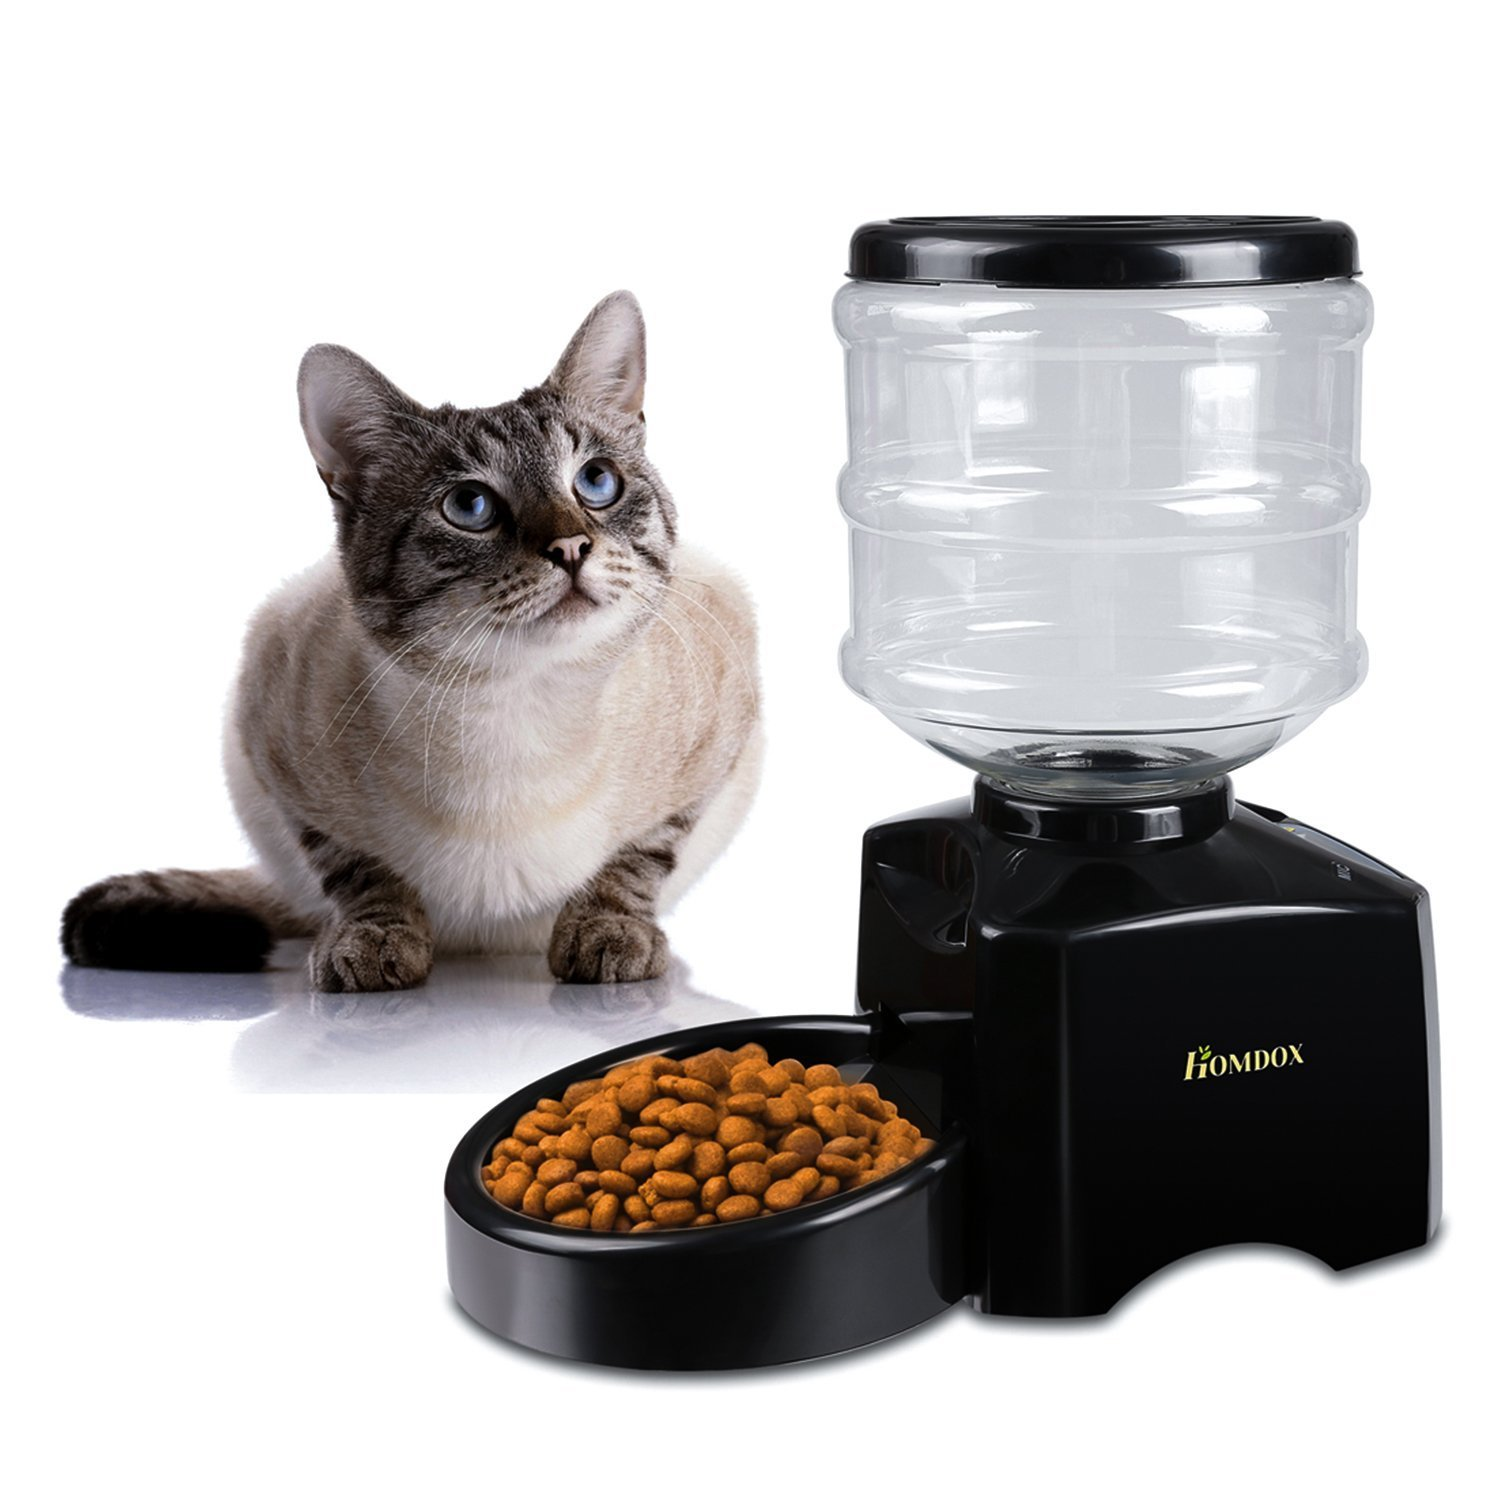 sale bowl shop for color dish automatic online dishbowl cat feeders feeder plastic brands dog dispenser durable lovely cats randomly auto timer water pet